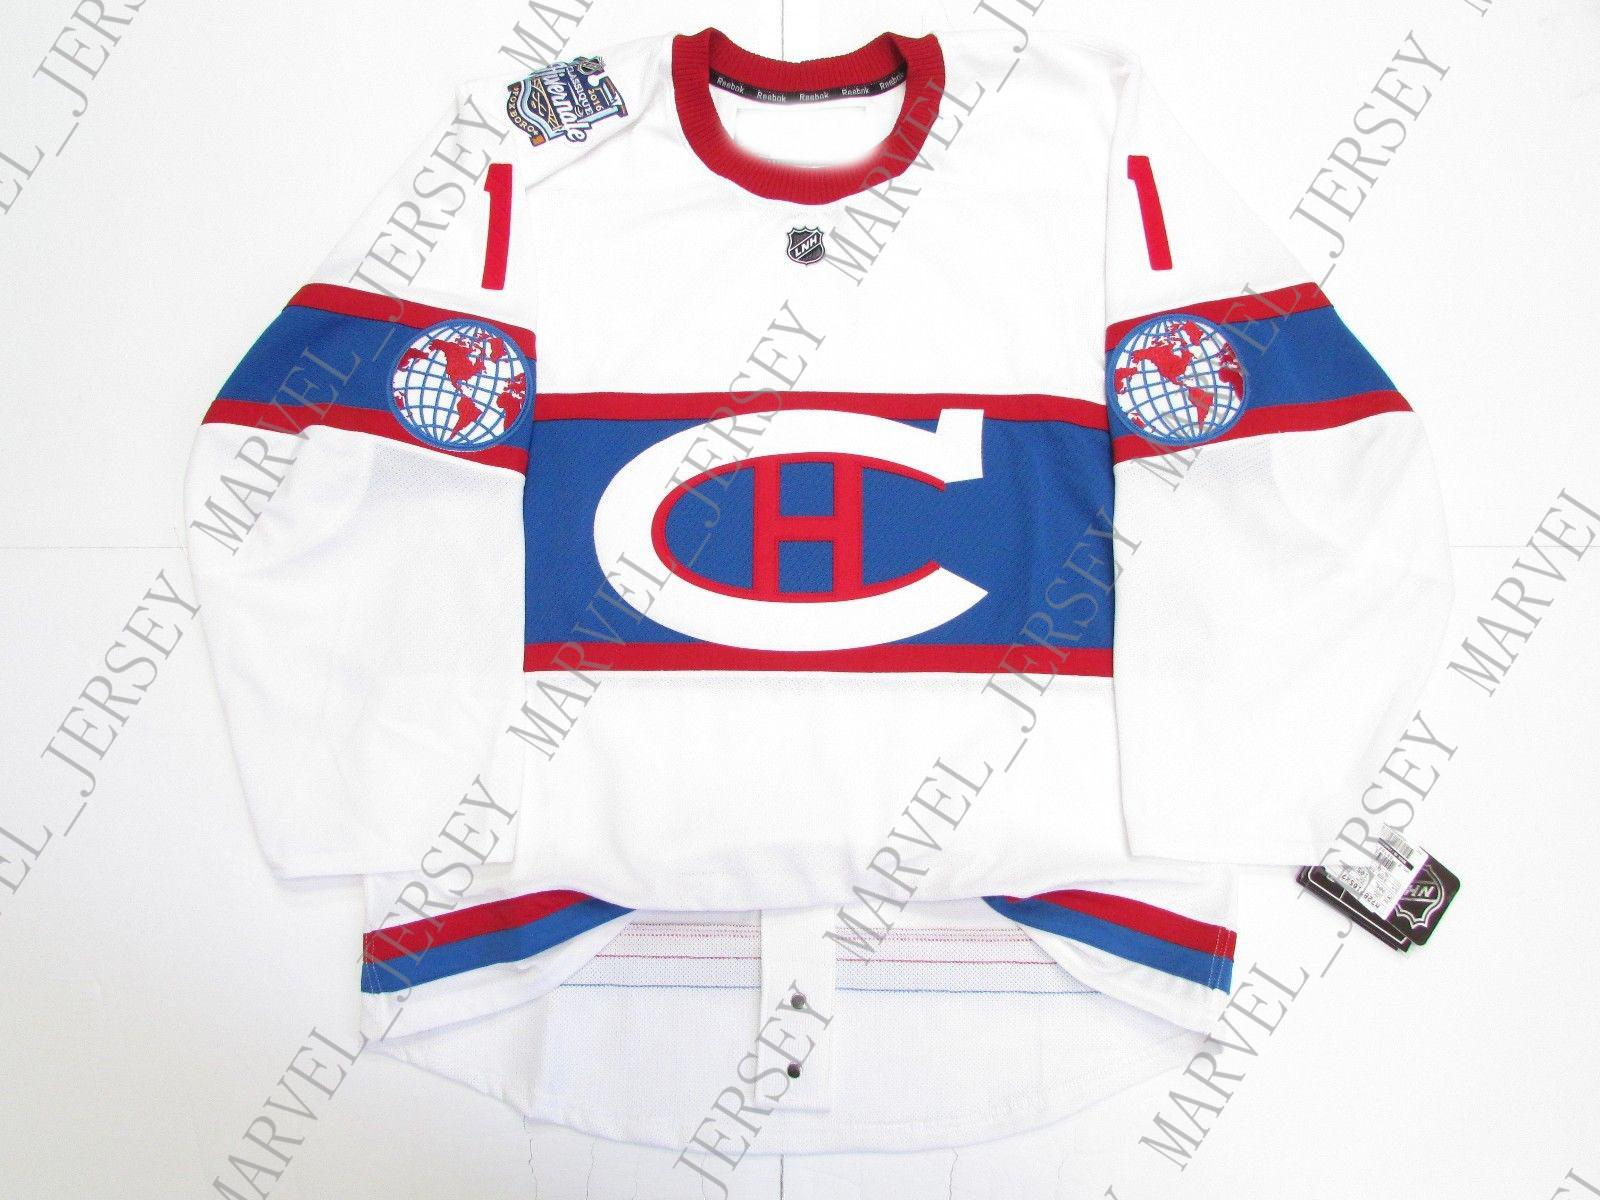 competitive price 1004b 0b892 Cheap custom YOUNG MONTREAL CANADIENS 2016 WINTER CLASSIC JERSEY stitch add  any number any name Mens Hockey Jersey XS-5XL